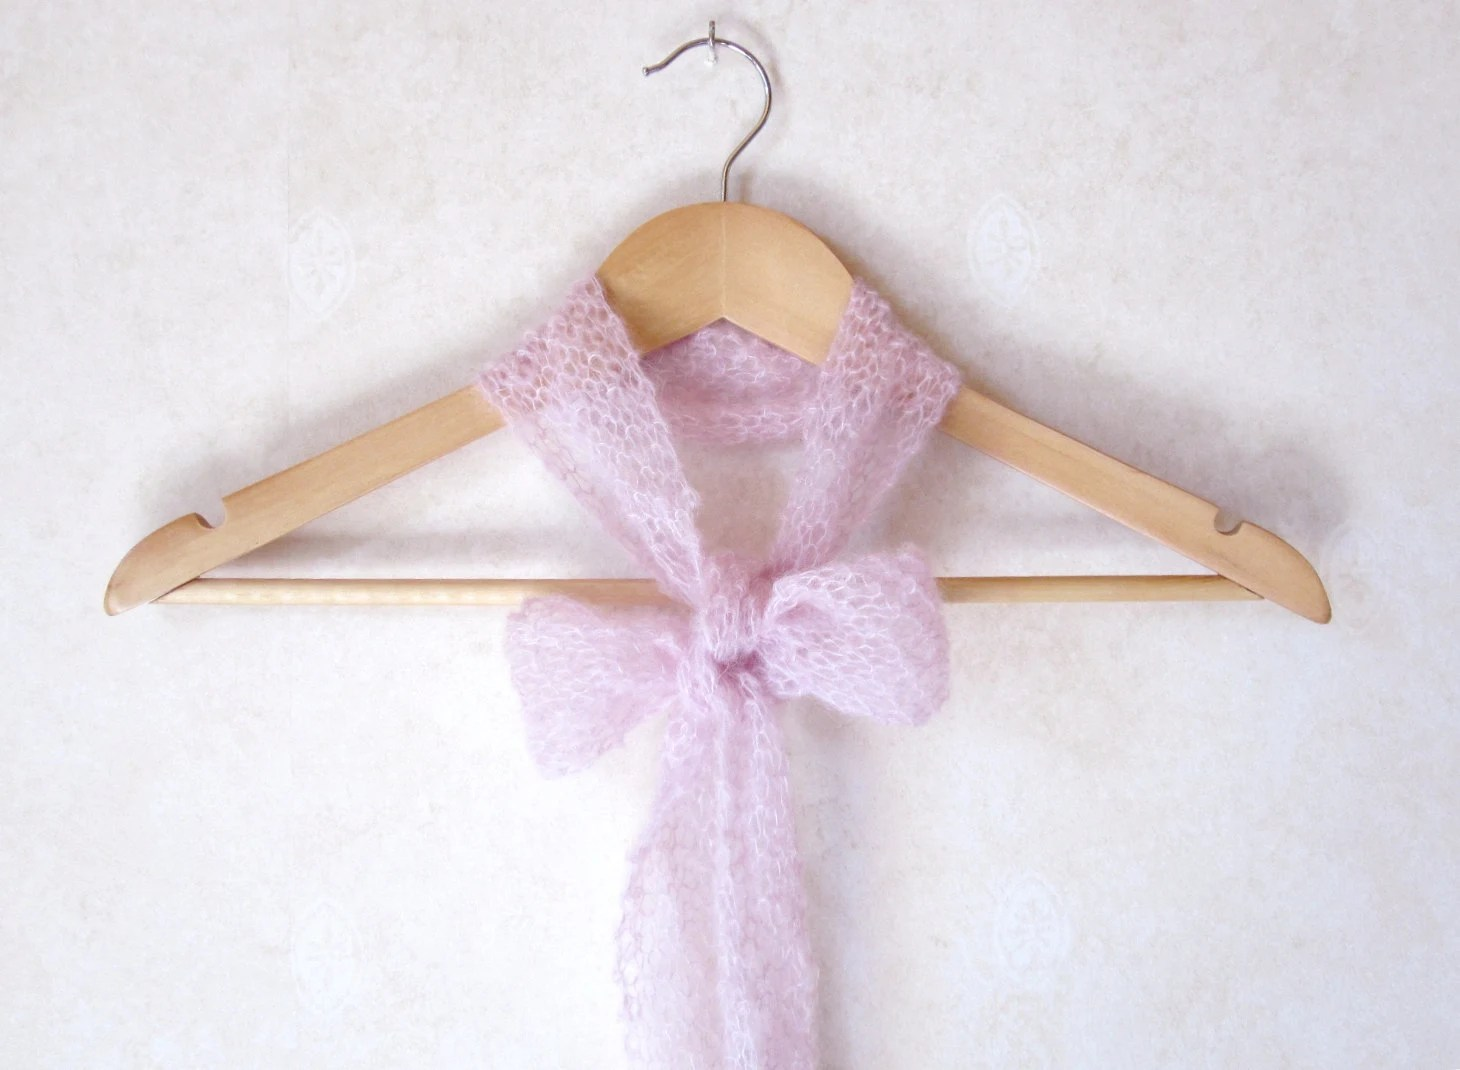 Women NeckTie Bow Tie Scarflette Lacy Handknitted Light Pink Mohair Wool Valentine Soldeshiver Wintersales - DoucesLaines